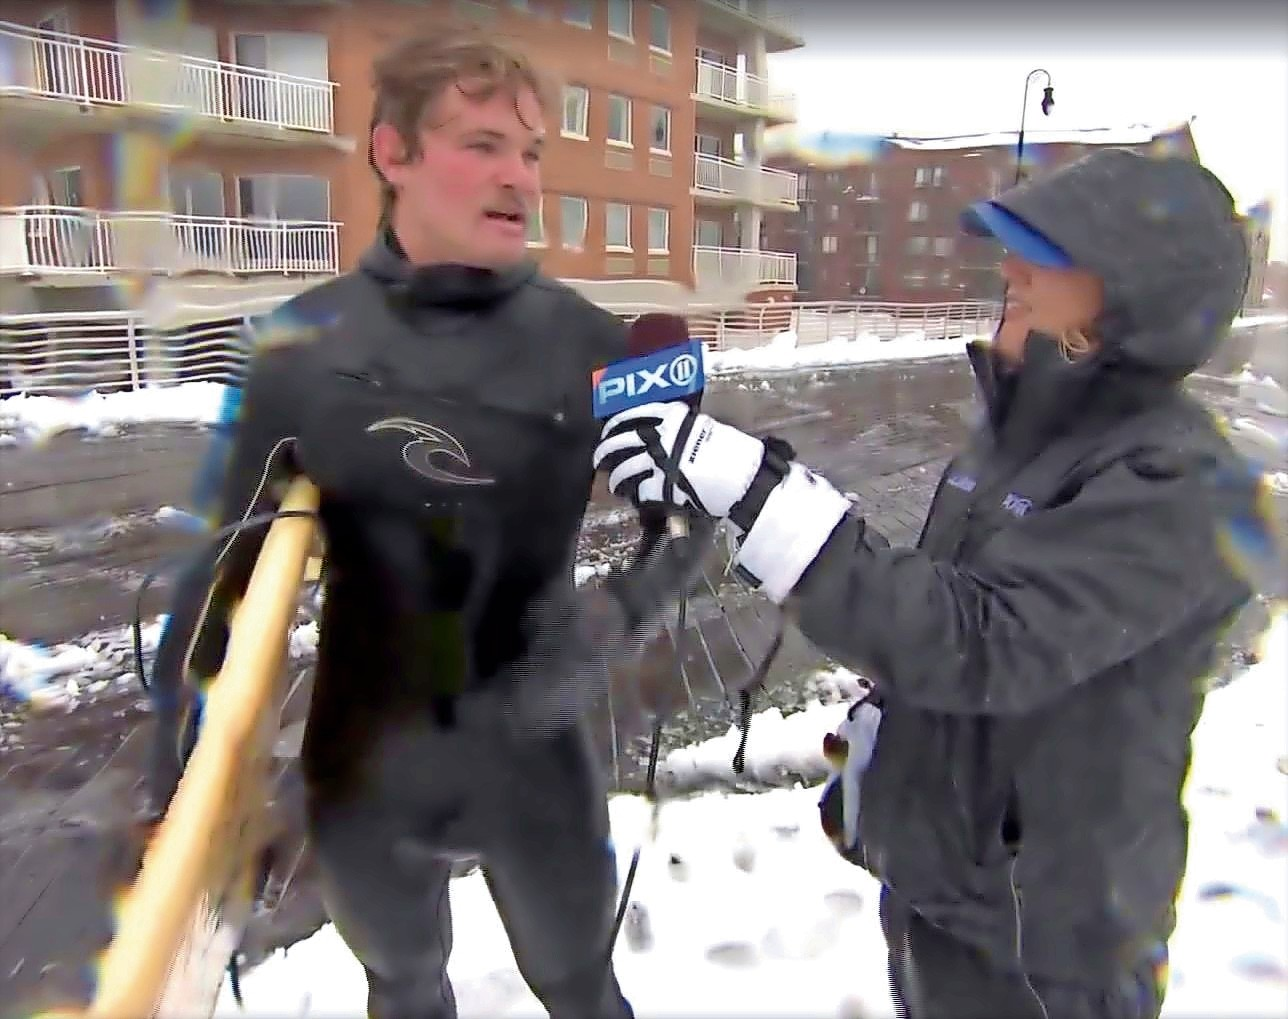 Surfer Adam Winerip made the news on Tuesday, and told PIX11 reporter Kirstin Cole that it was his first time surfing and had floated for about a mile in a nor'easter.